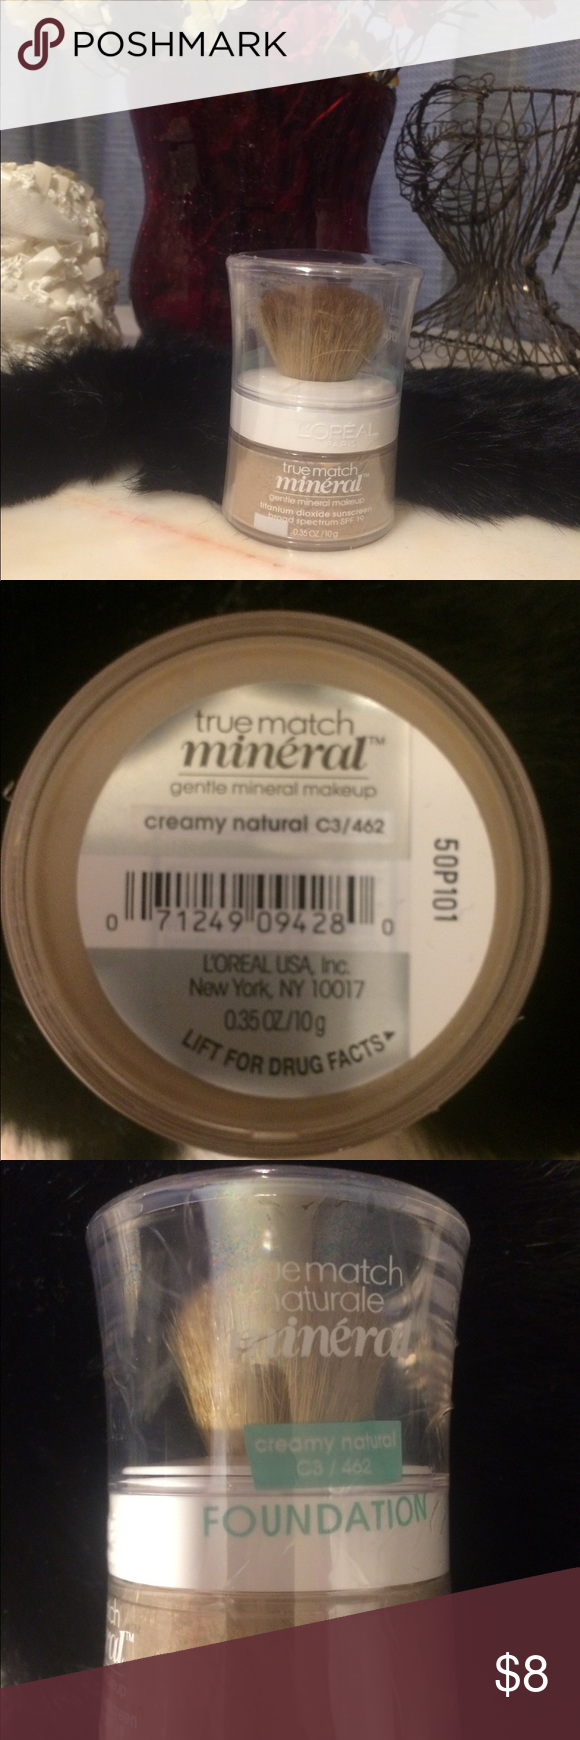 L'Oréal true match mineral foundation Creamy natural C3